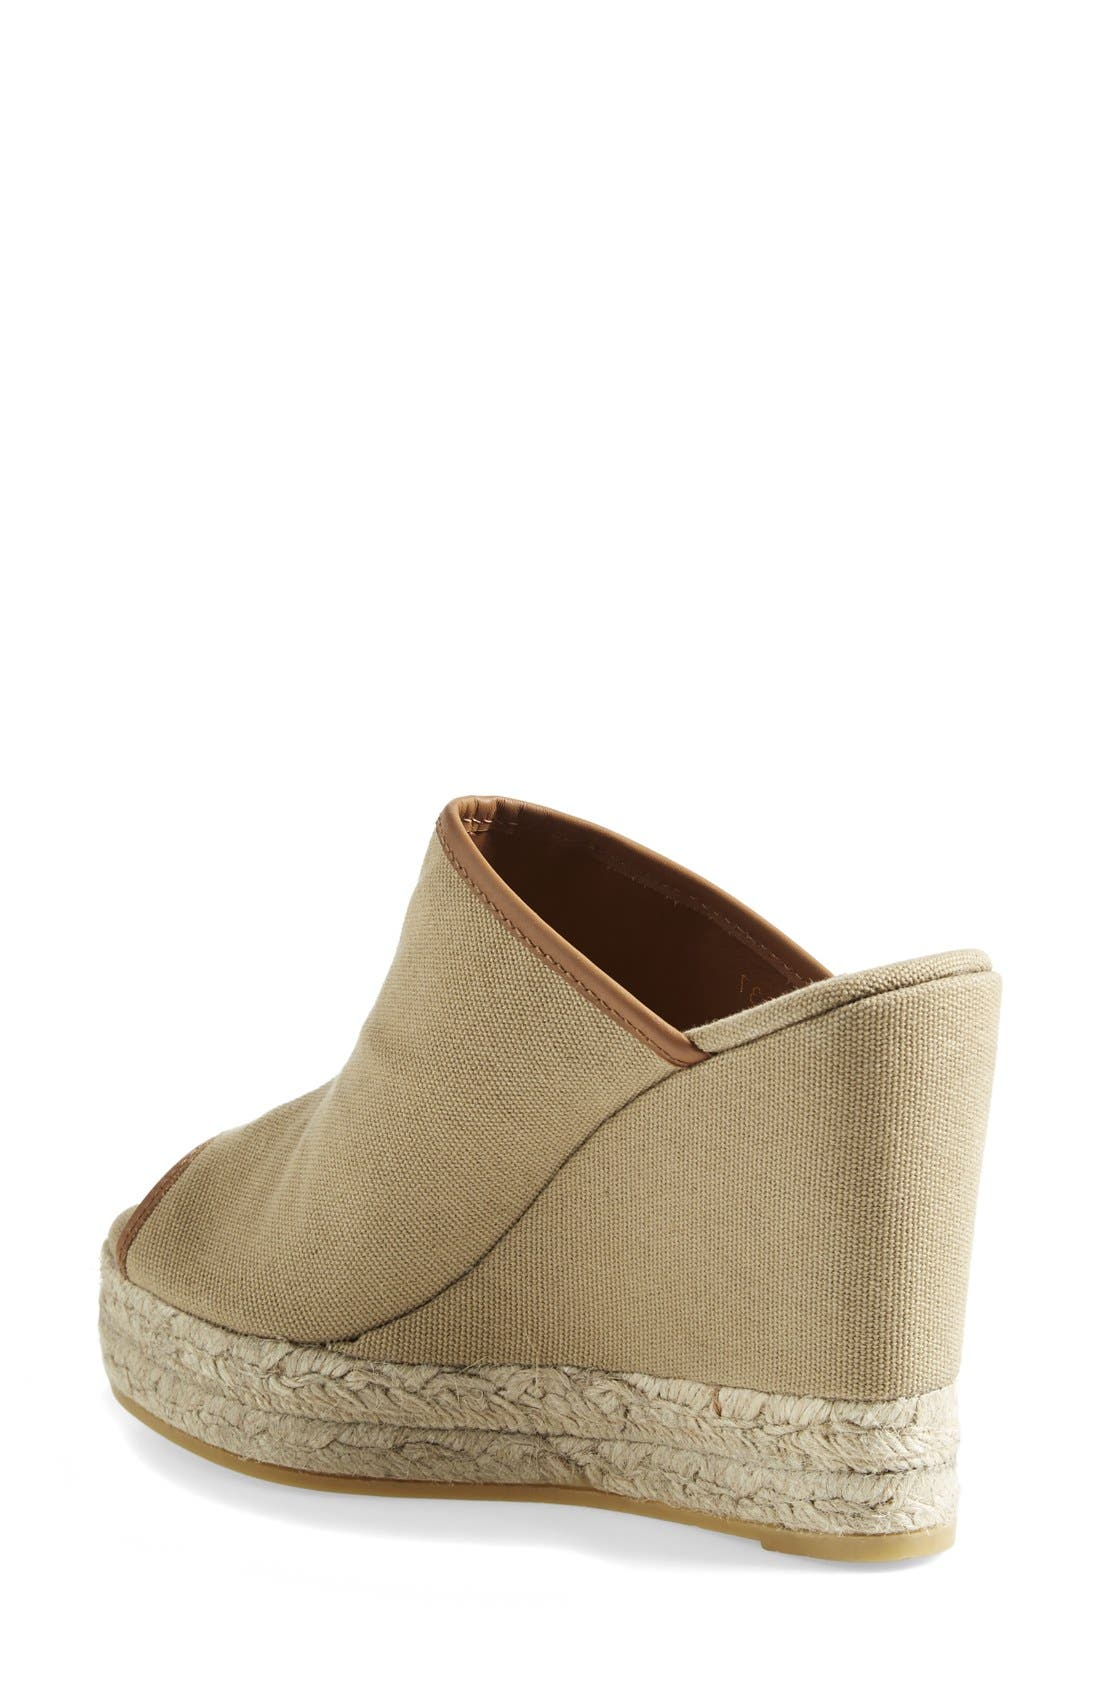 Alternate Image 2  - Tory Burch Canvas Wedge Sandal (Women)